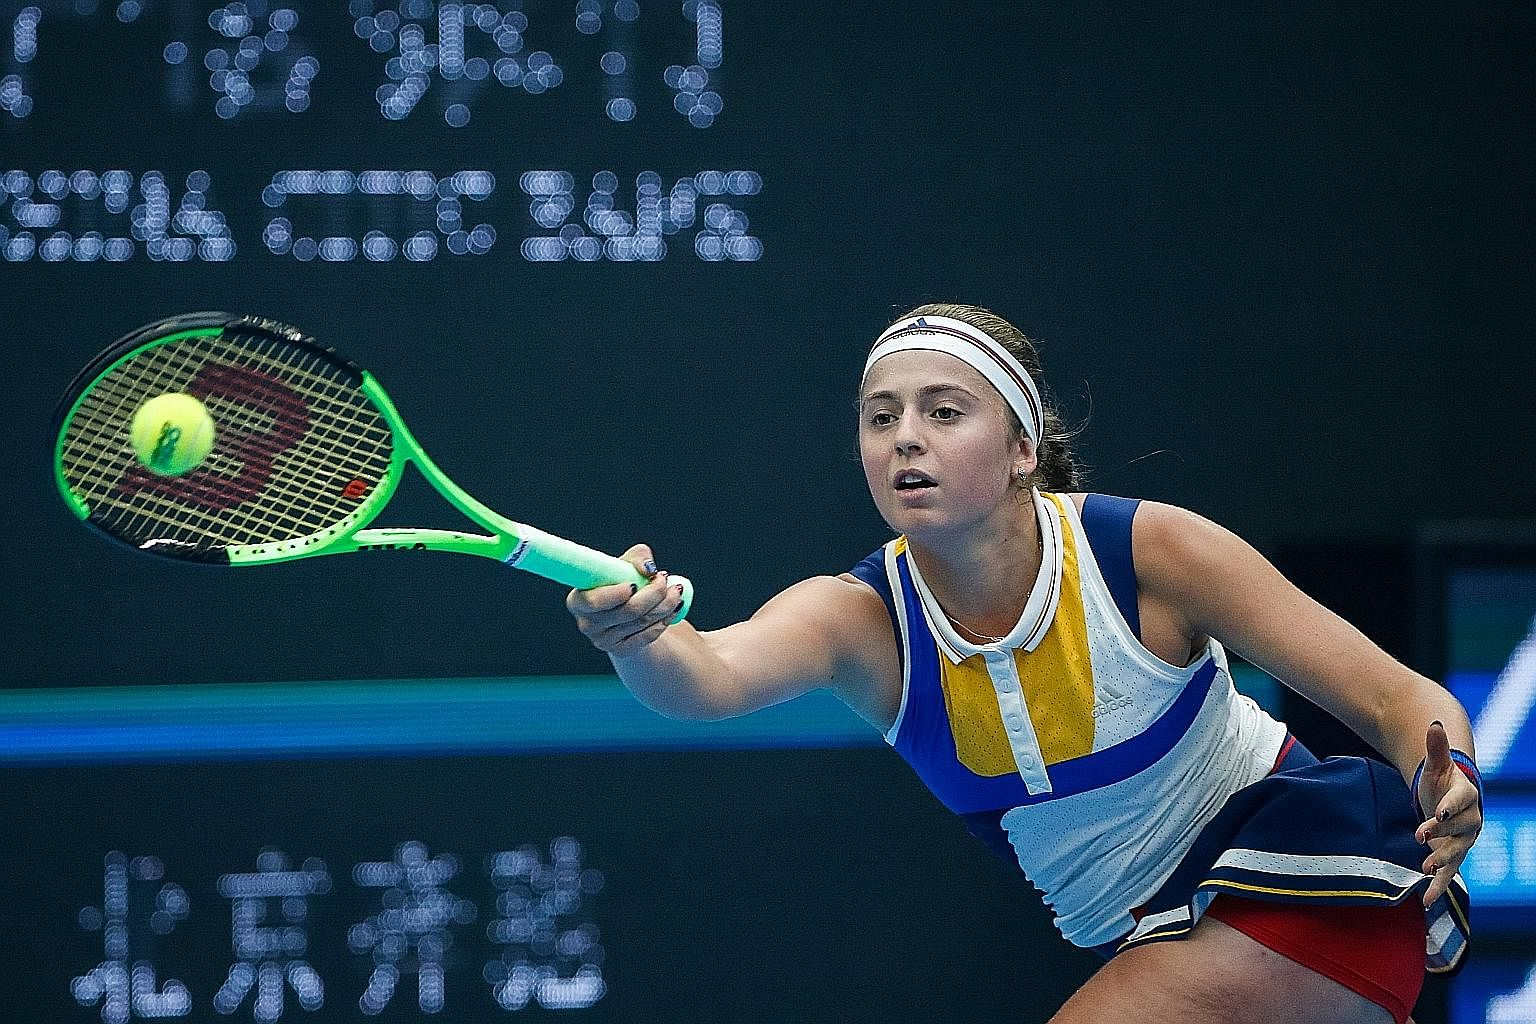 Jelena Ostapenko returning during her loss to world No. 1 Simona Halep in the China Open semi-finals in Beijing this month. The 20-year-old reigning French Open champion from Latvia was a professional ballroom dancer for seven years. This will be her